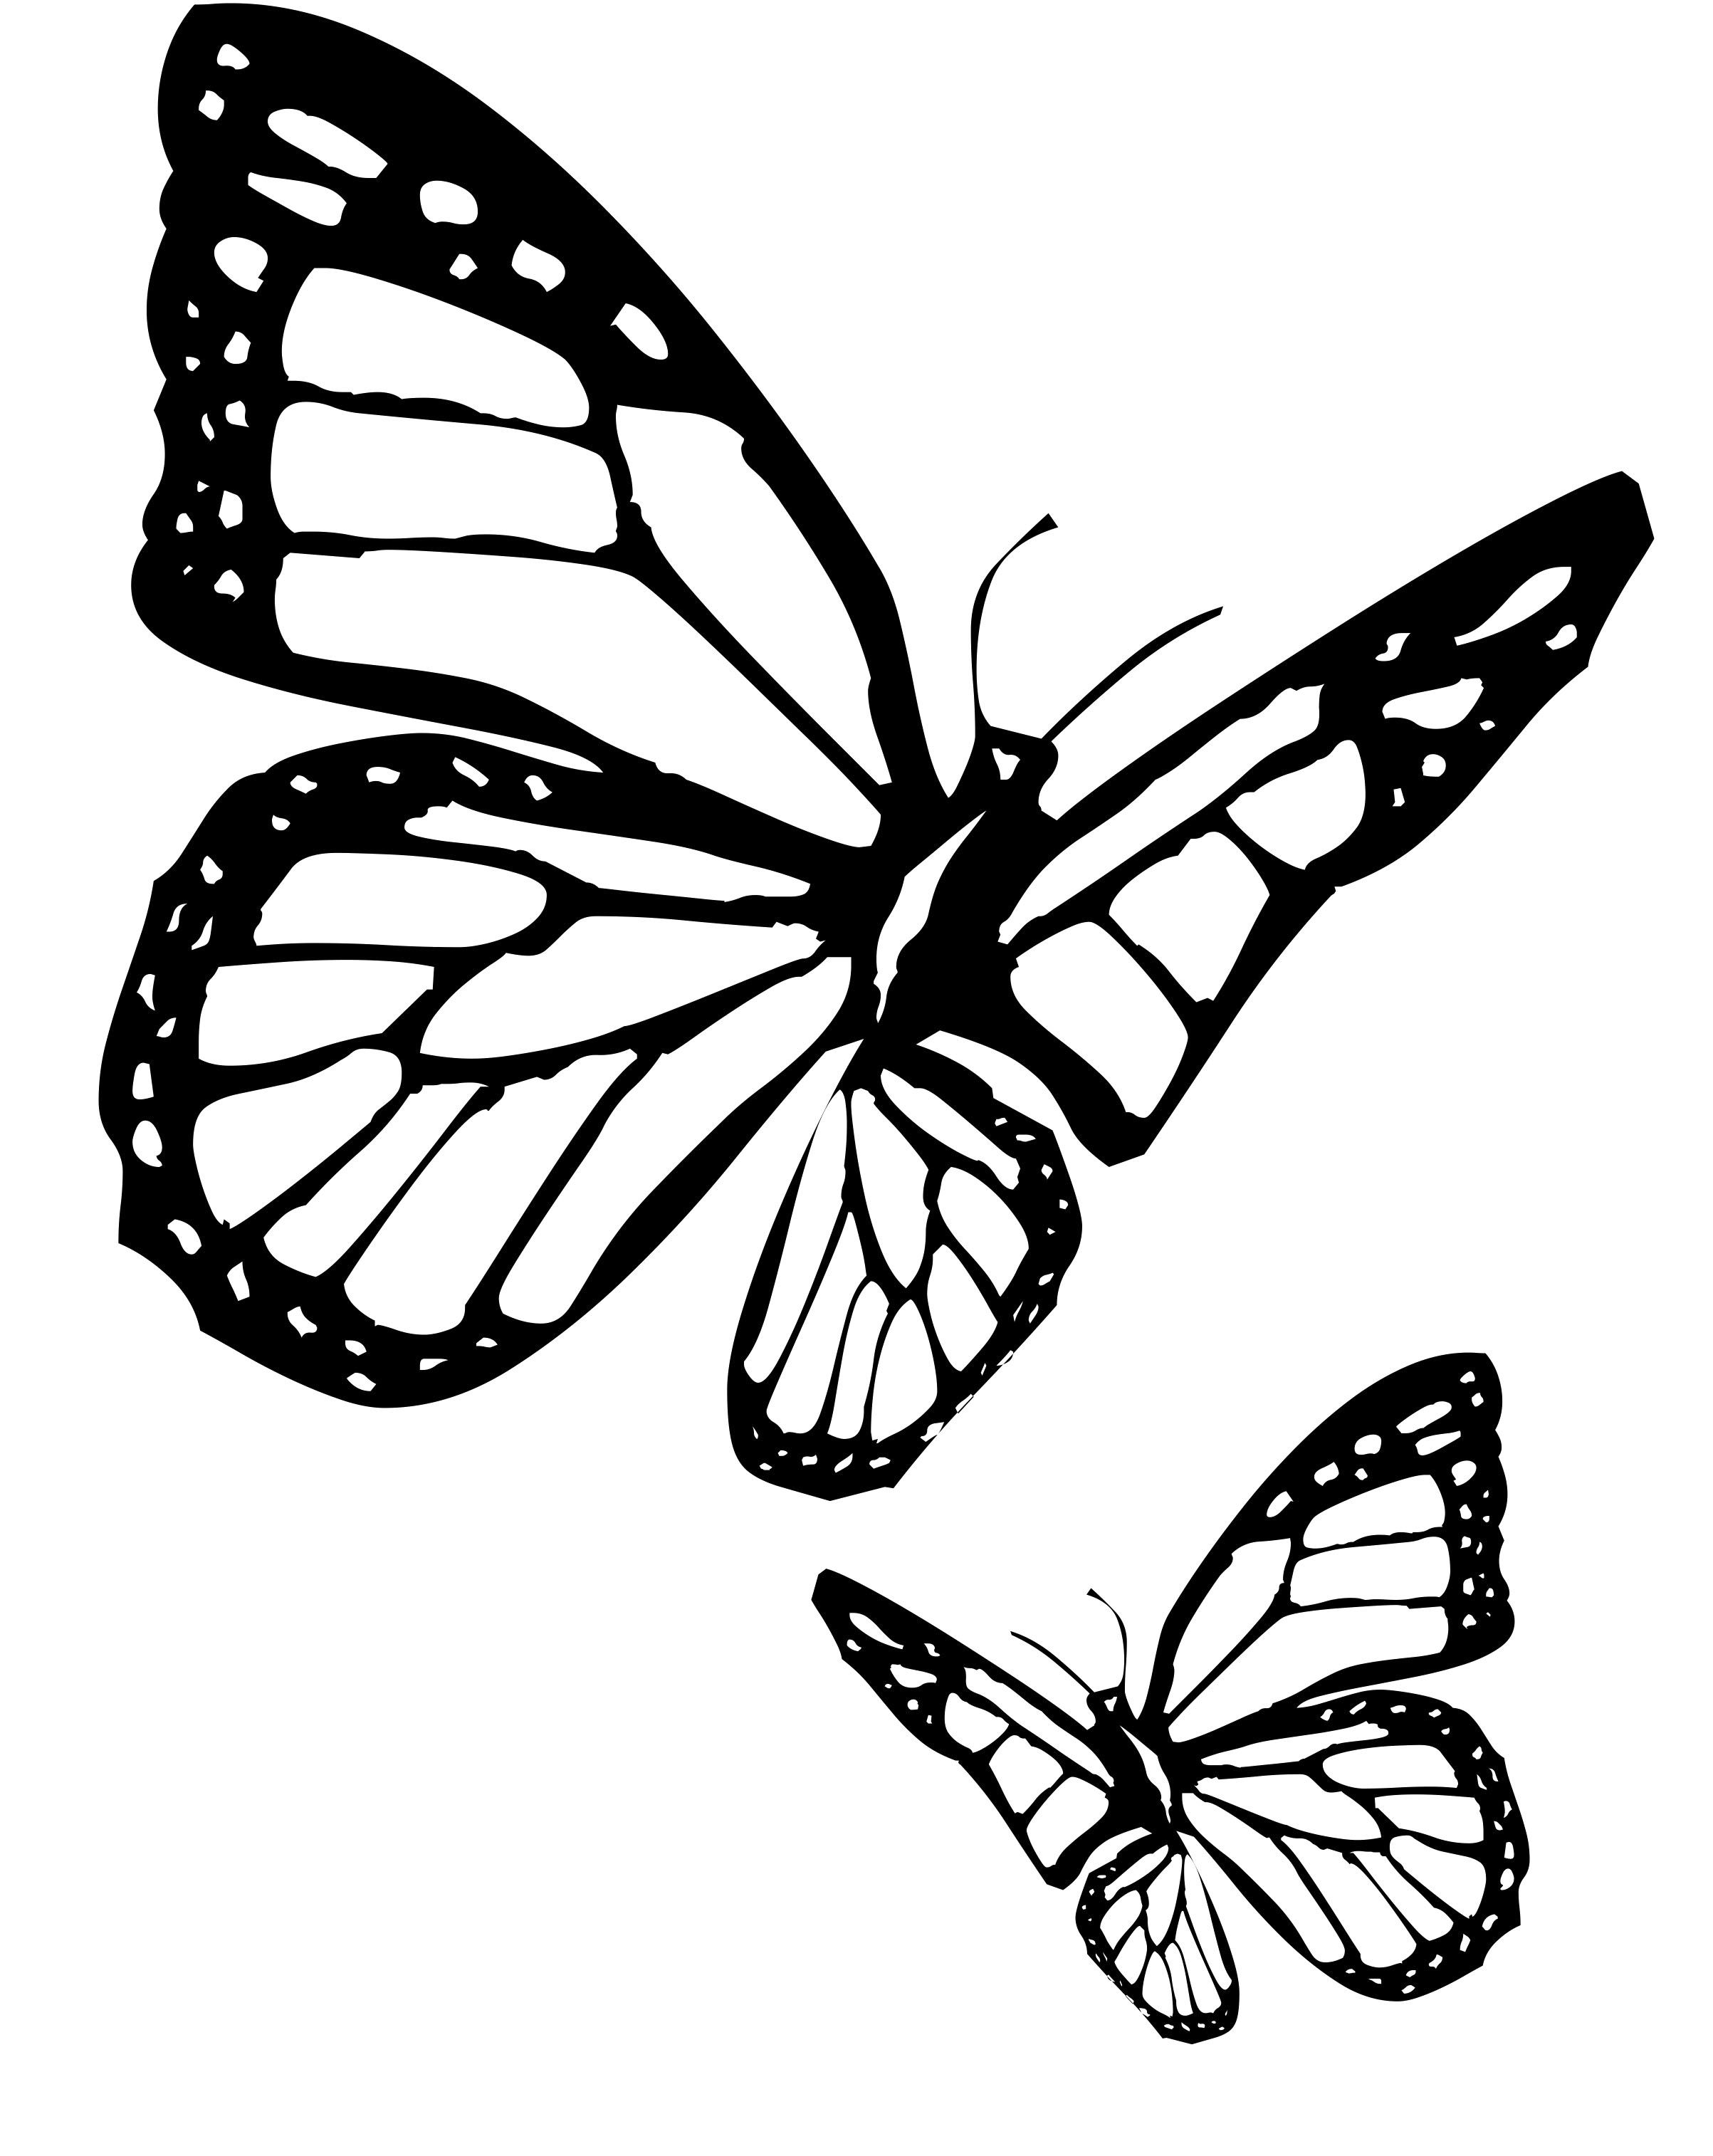 Posts Related To Two Butterfly Dark Coloring Pages Images Butterflies For Colorin Butterfly Coloring Page Insect Coloring Pages Printable Flower Coloring Pages [ 3028 x 2406 Pixel ]